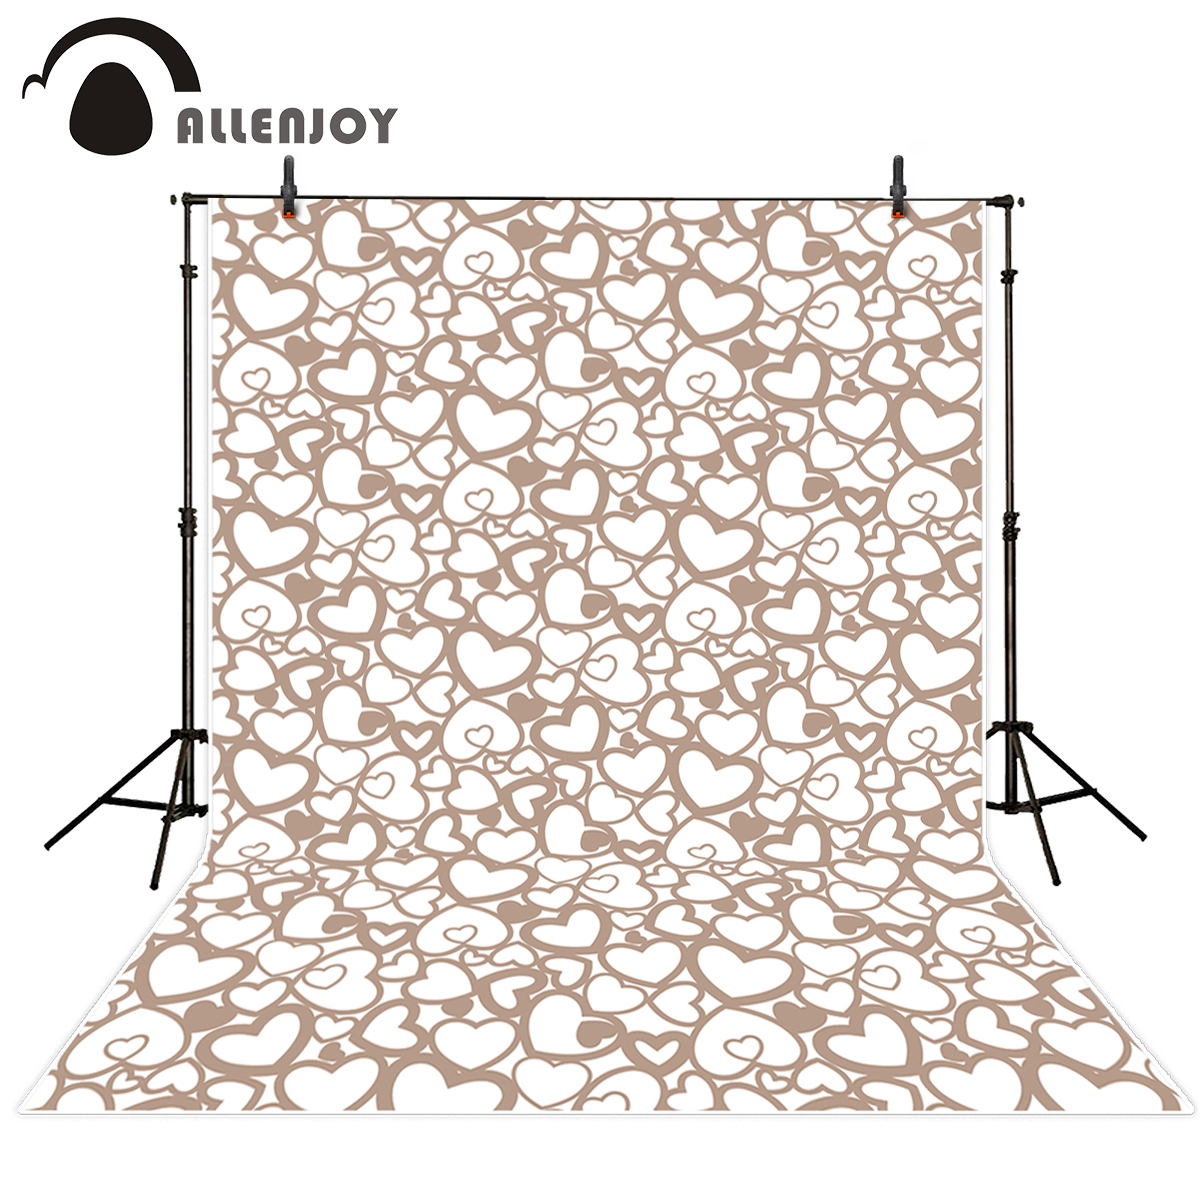 Allenjoy photography backdrops brown heart love wedding Valentine's Day simple for studio photo background for photo shoots 8x10ft valentine s day photography pink love heart shape adult portrait backdrop d 7324